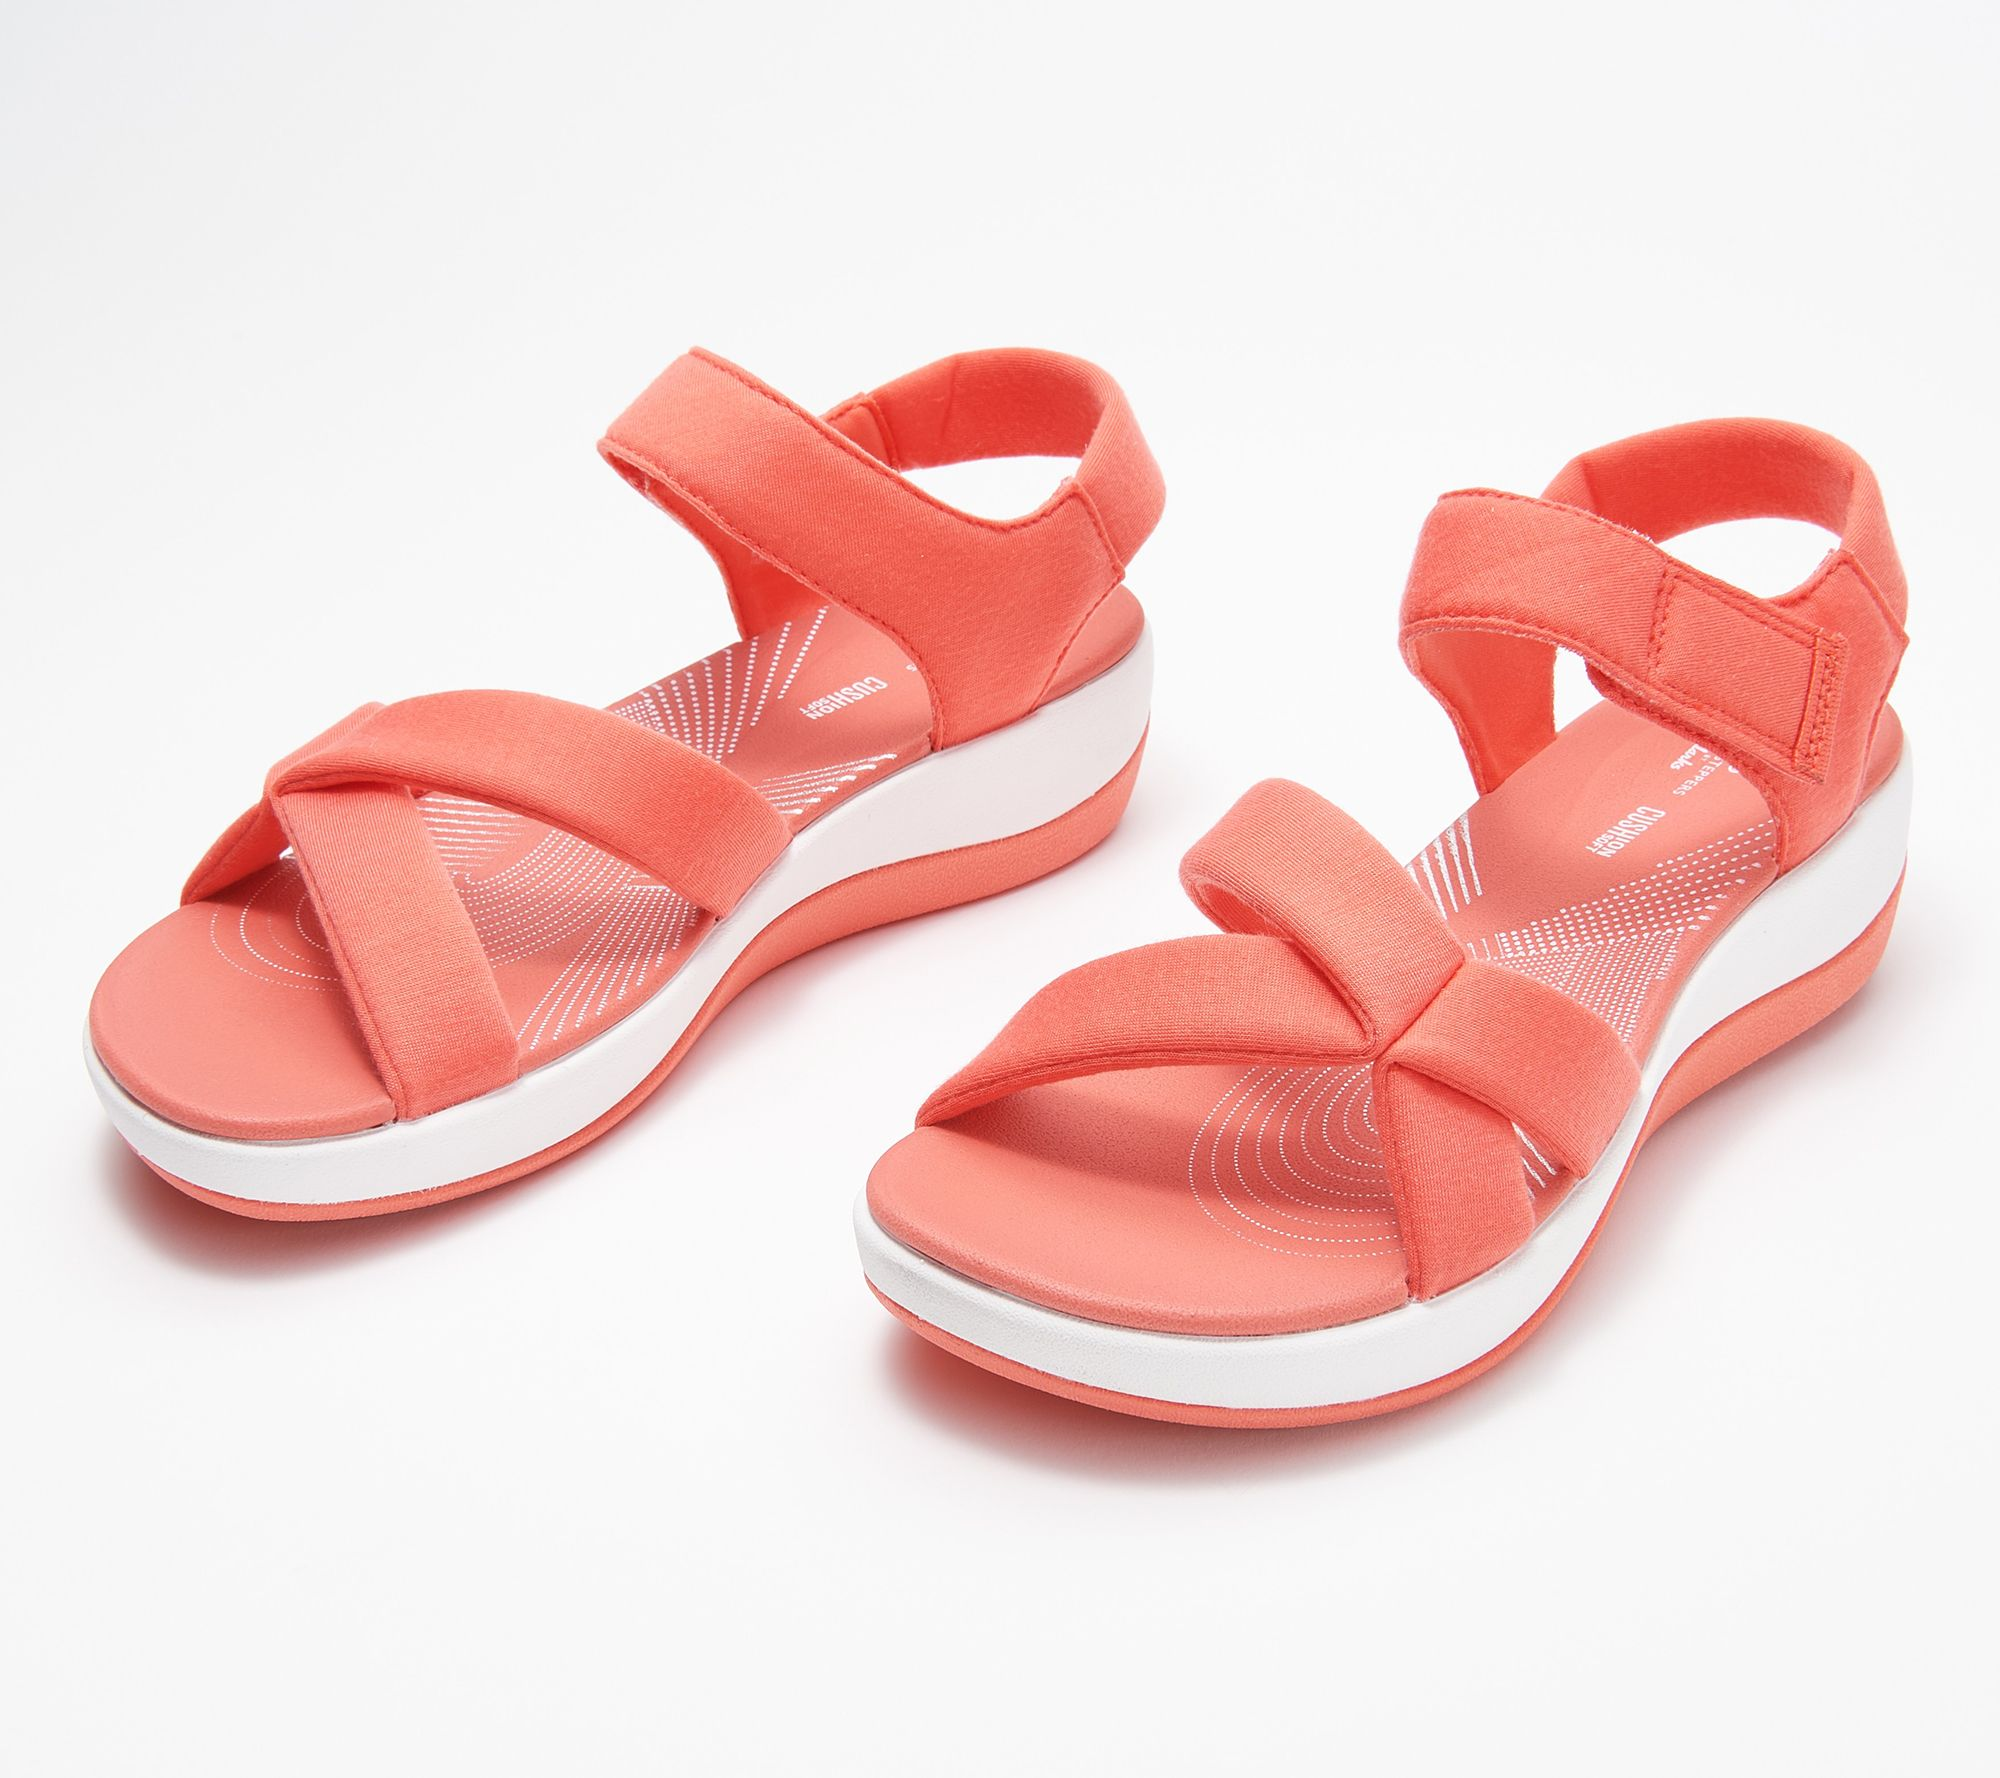 CLOUDSTEPPERS by Clarks Jersey Sport Sandals - Arla Gracie - QVC.com